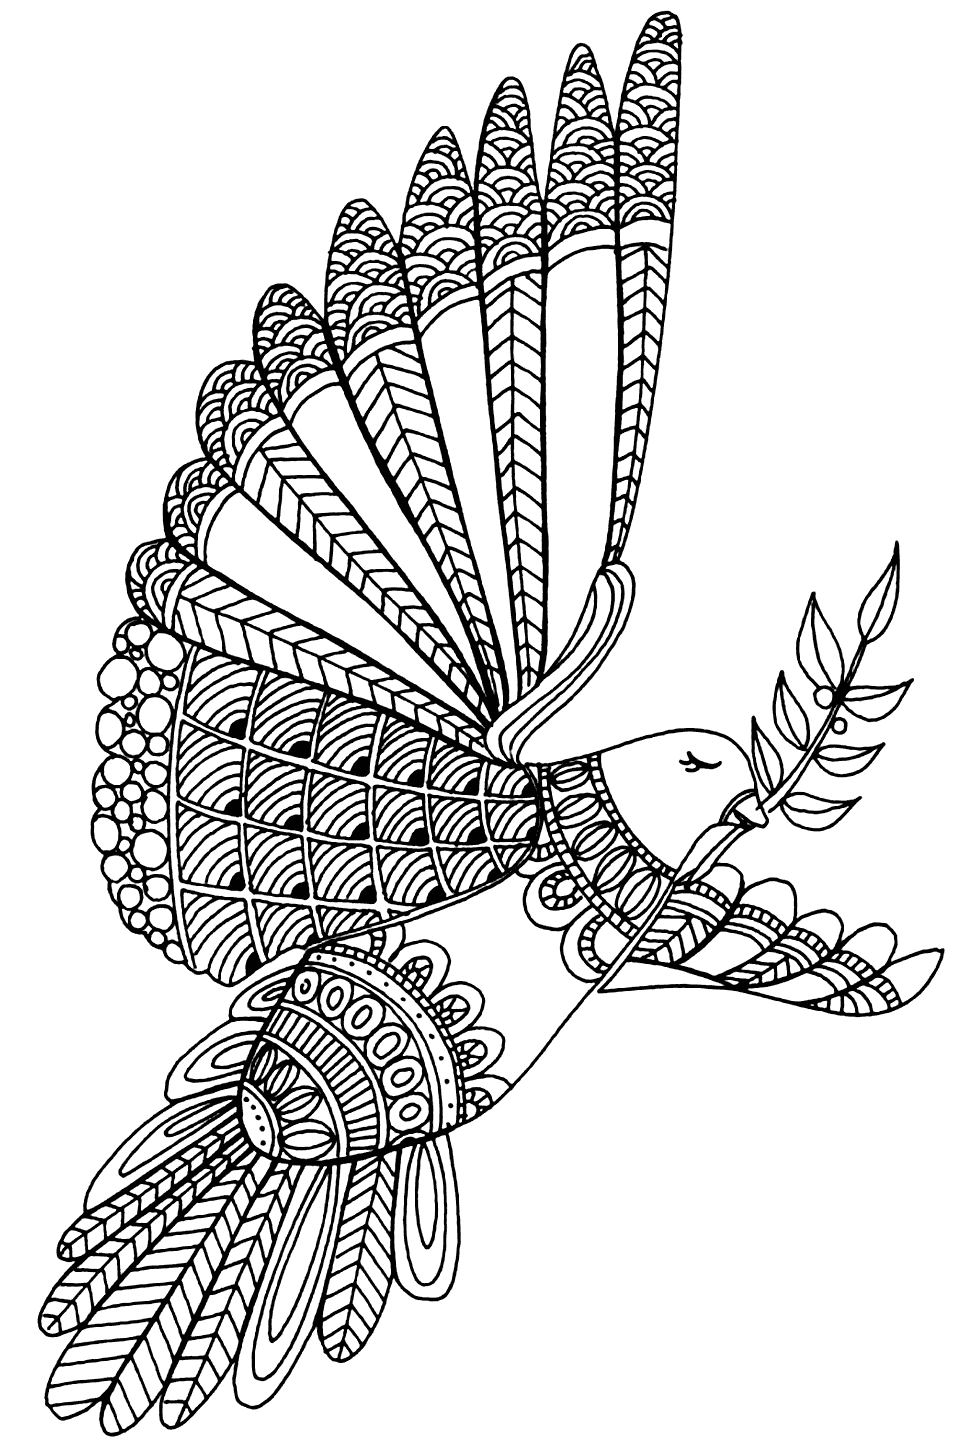 Peaceful Dove Coloring Pages for Adults